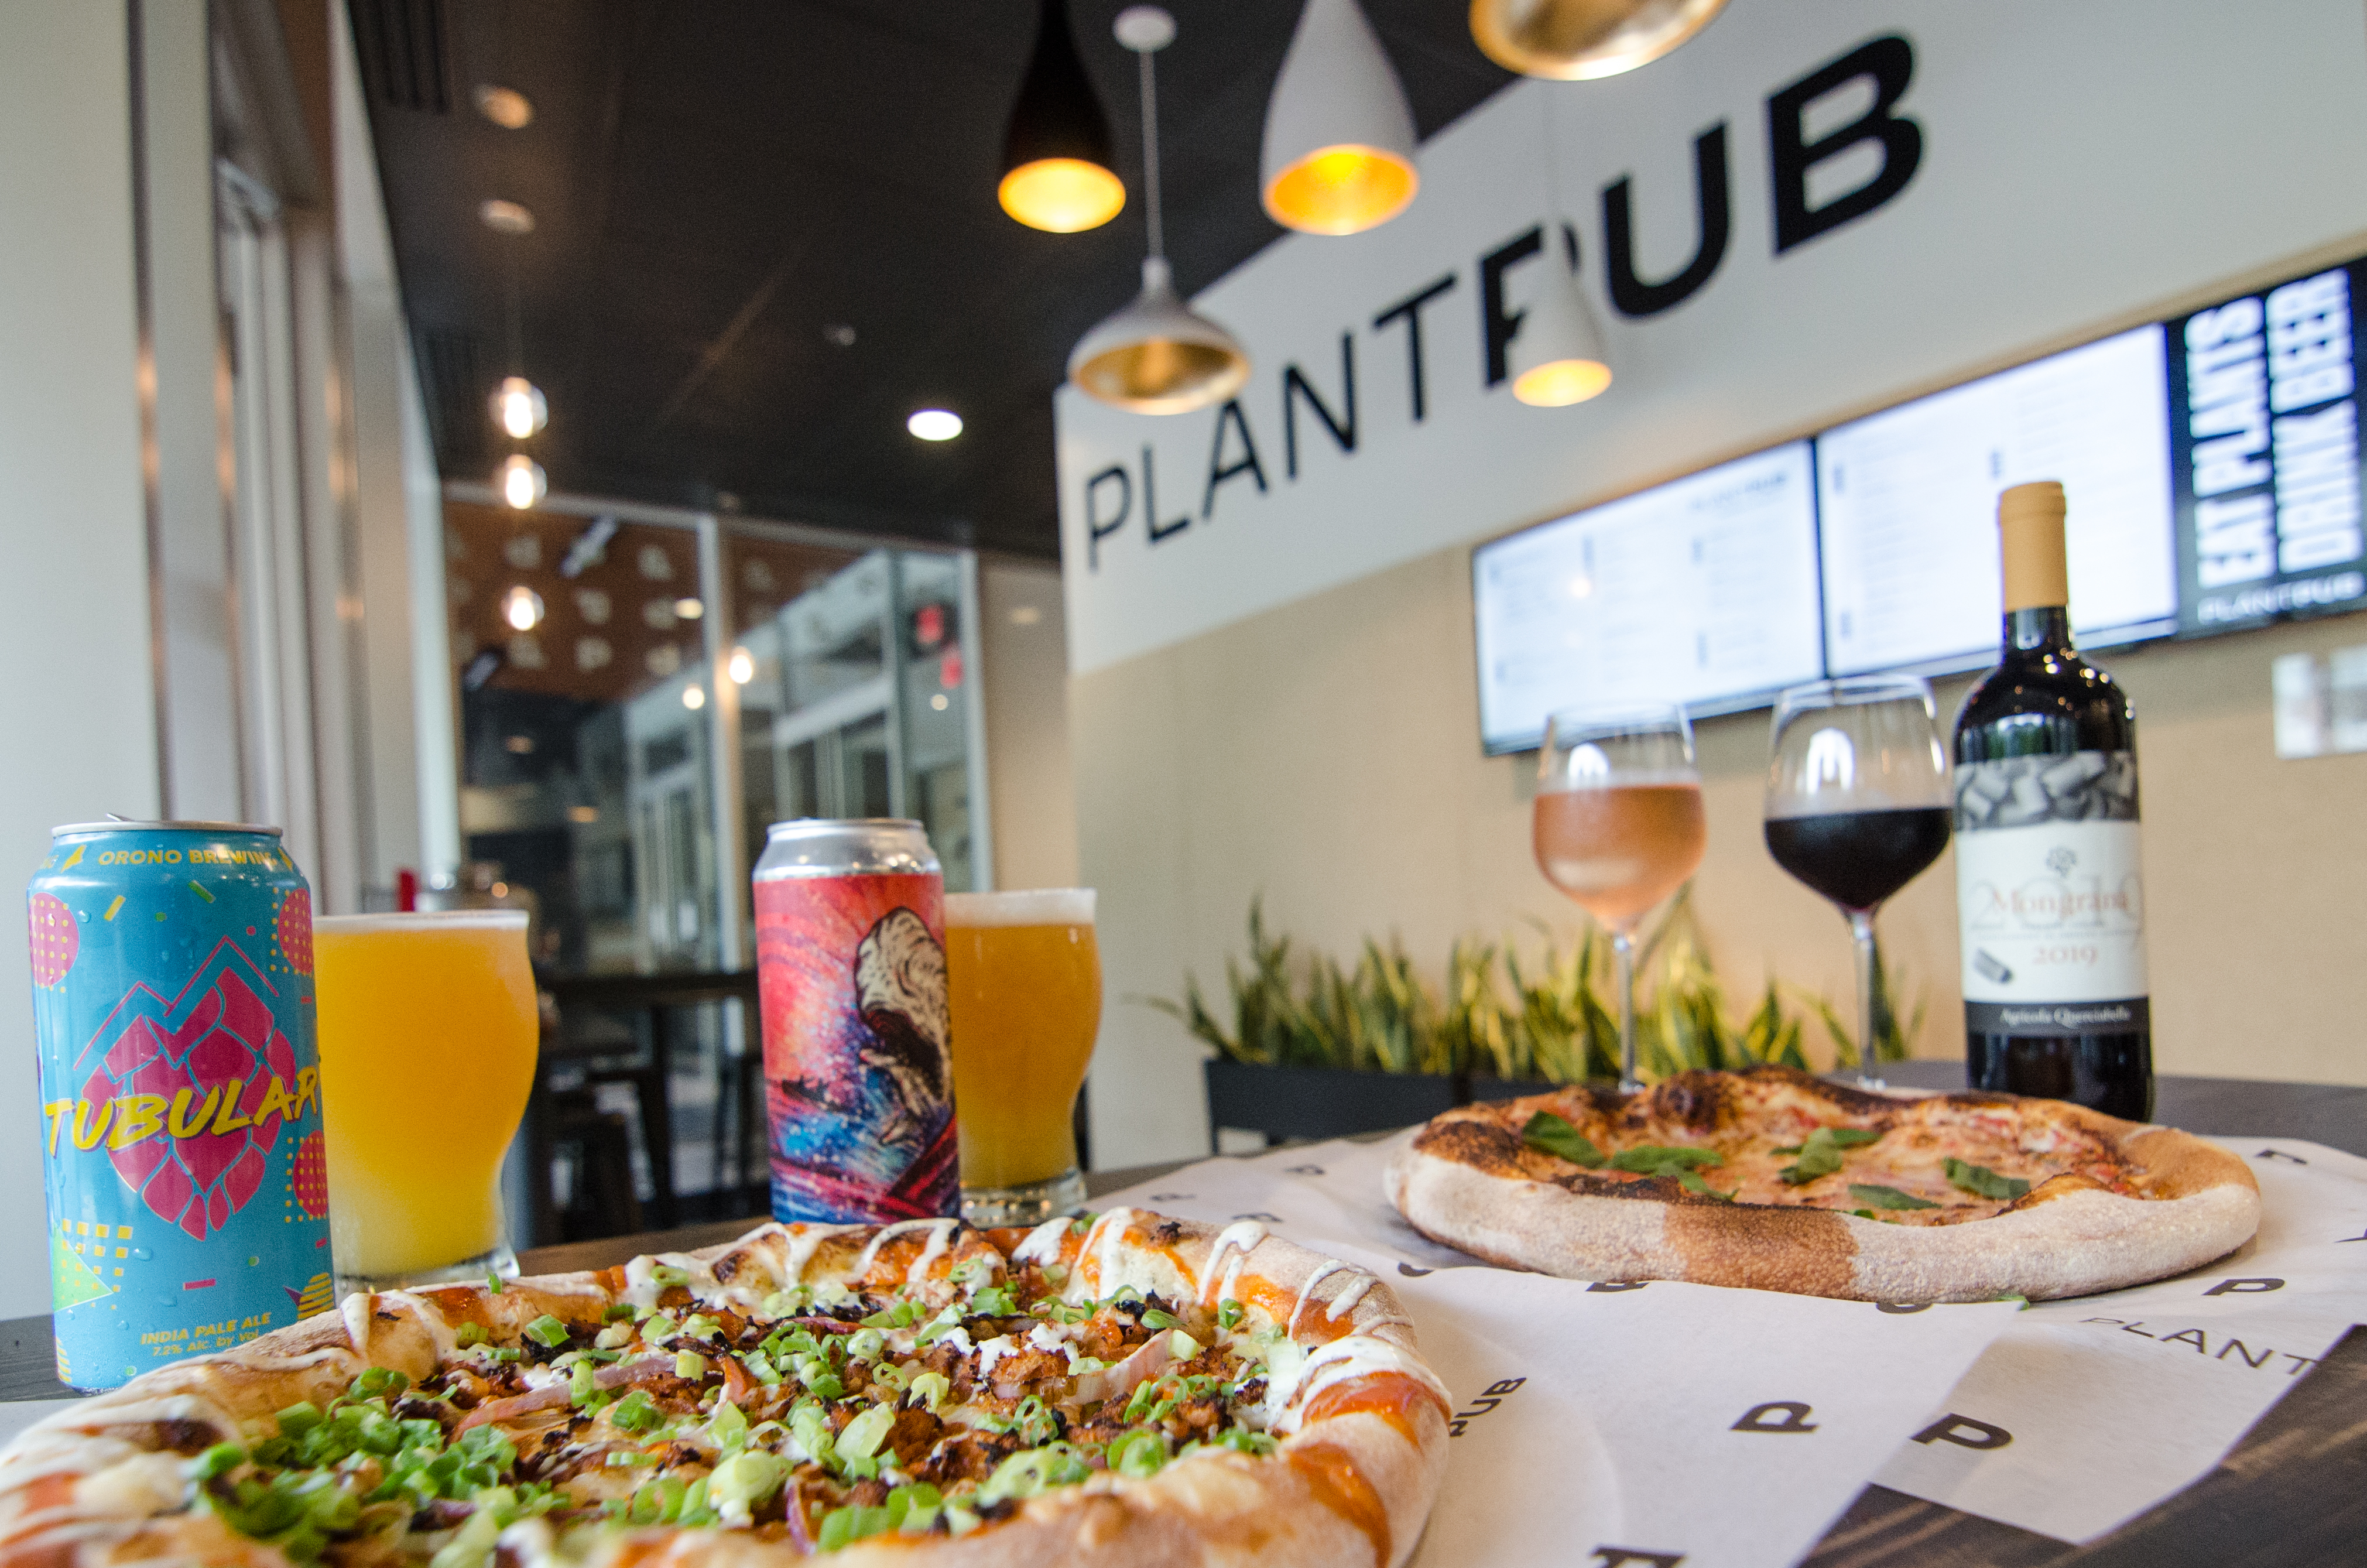 A table of pizza, beer, and wine is visible inside a casual restaurant, with PlantPub written on the wall.